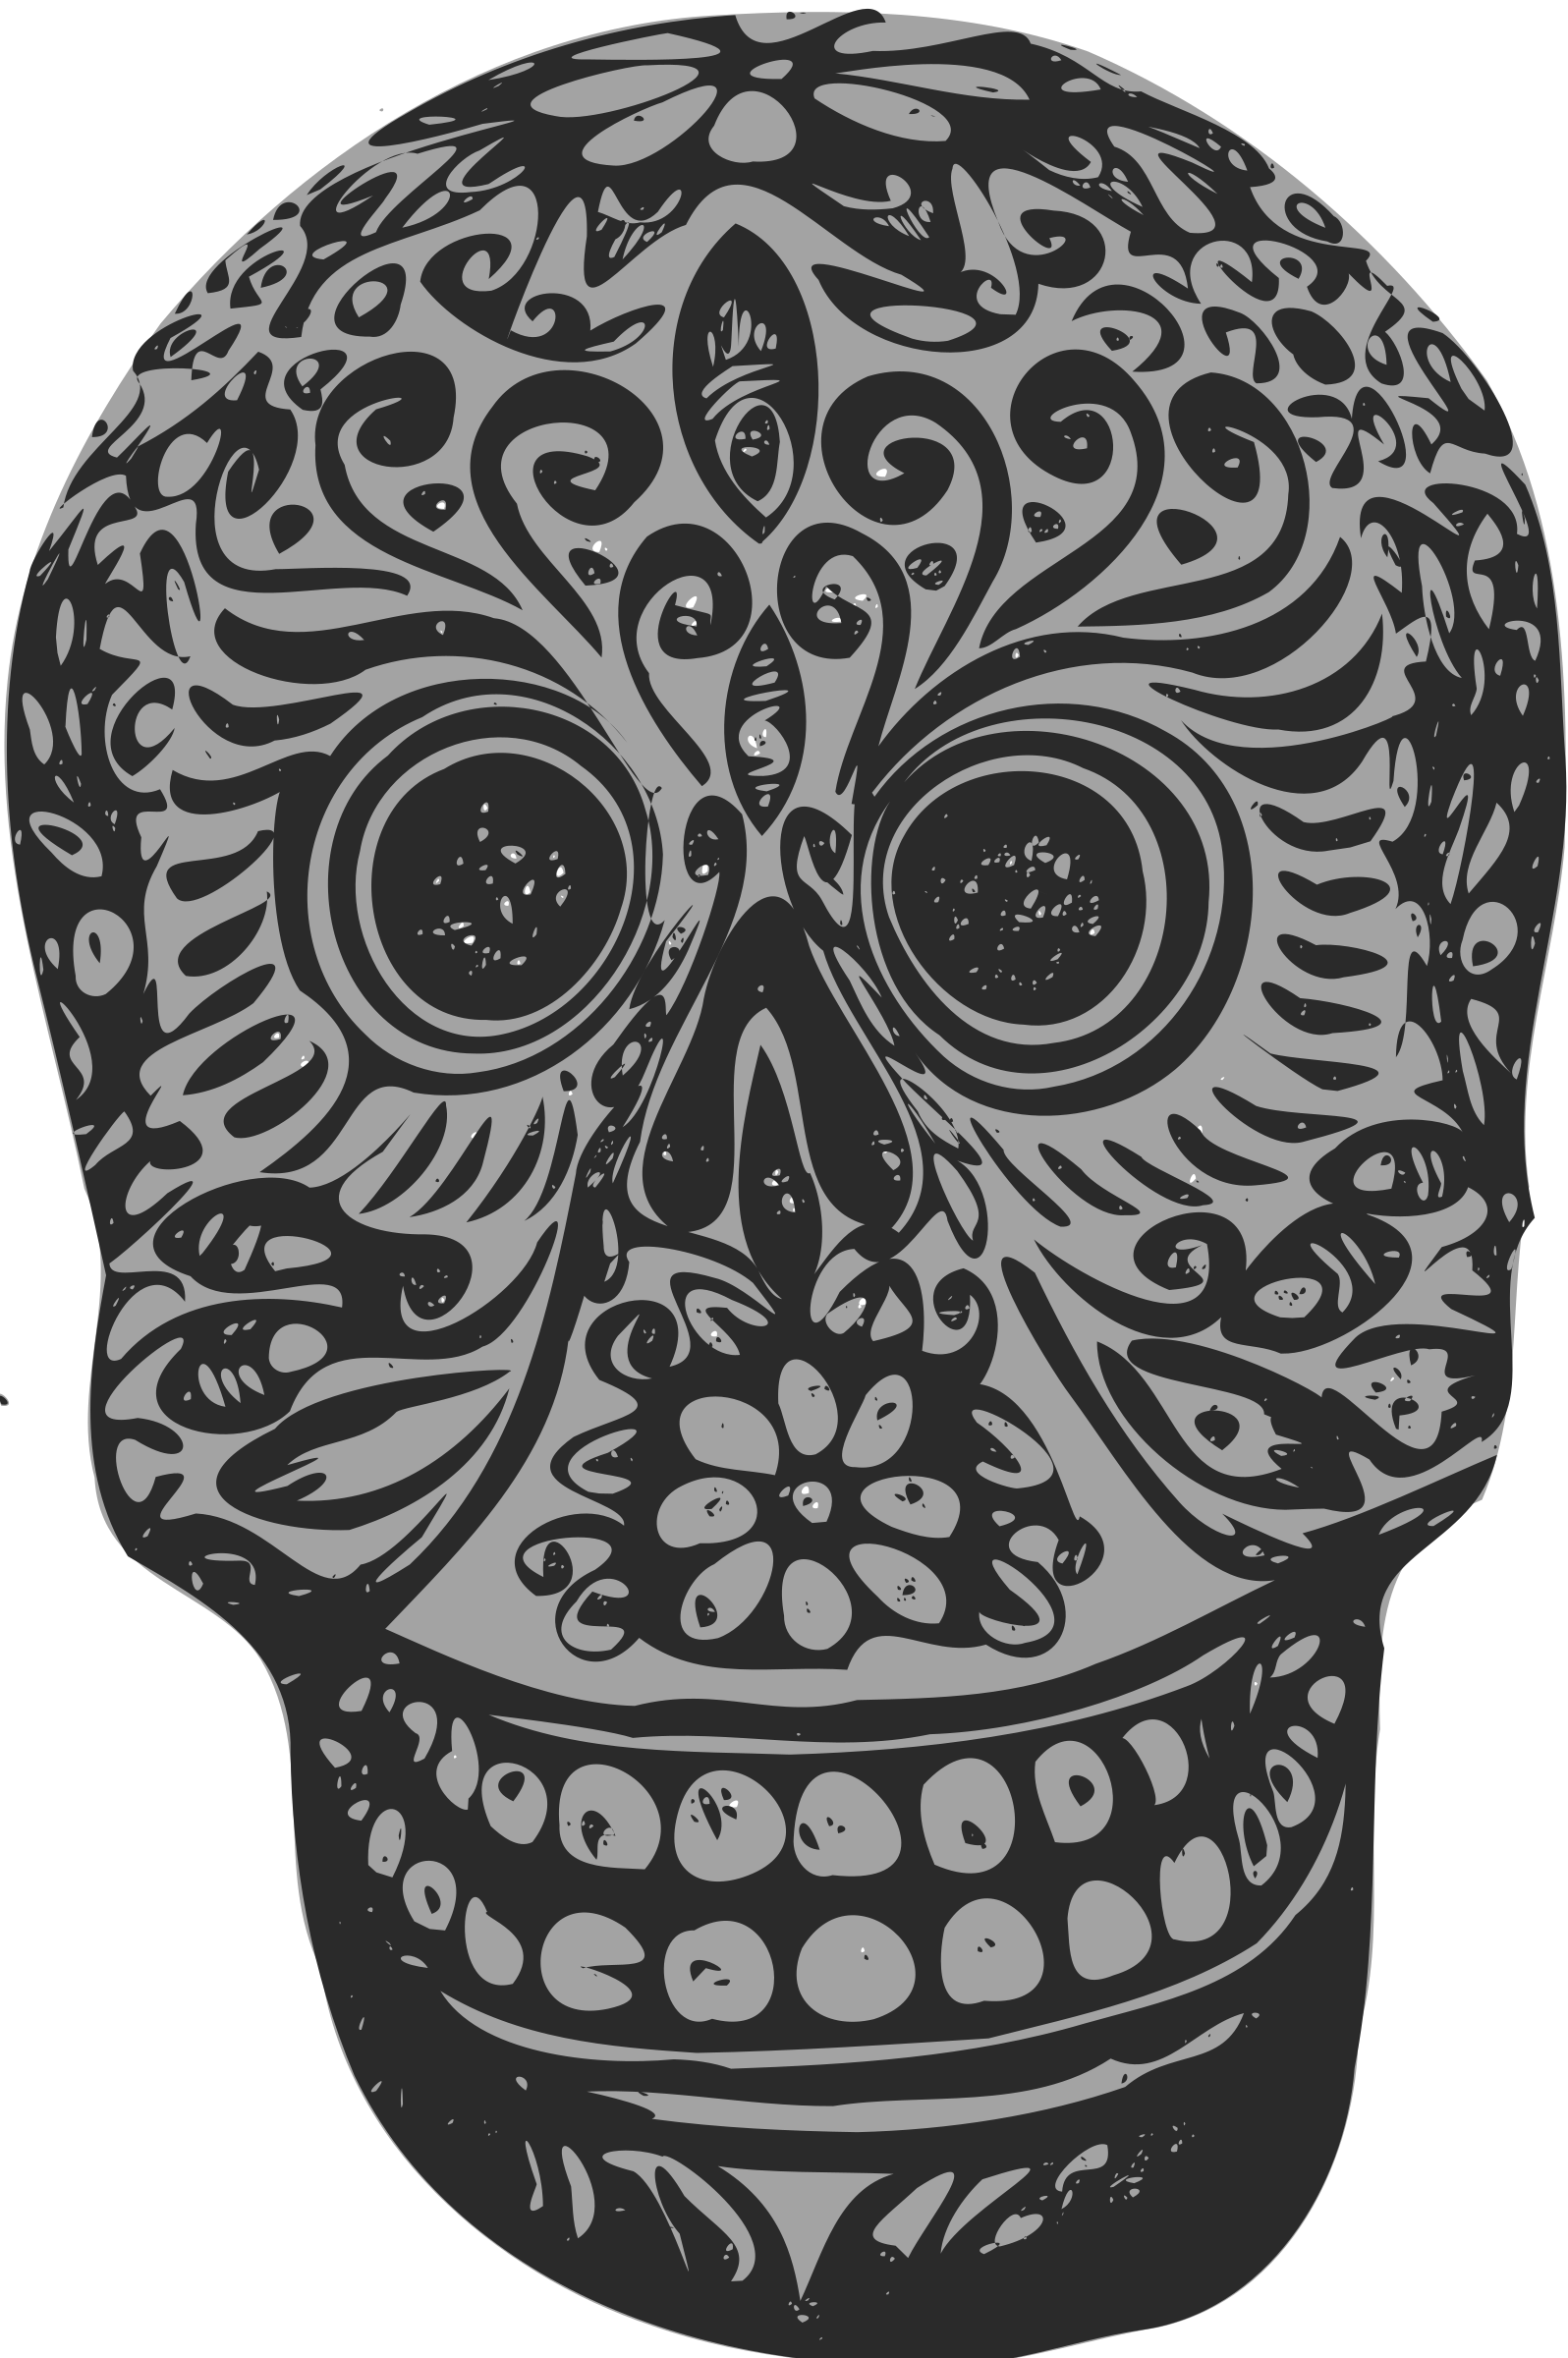 Tatoo skull by ben